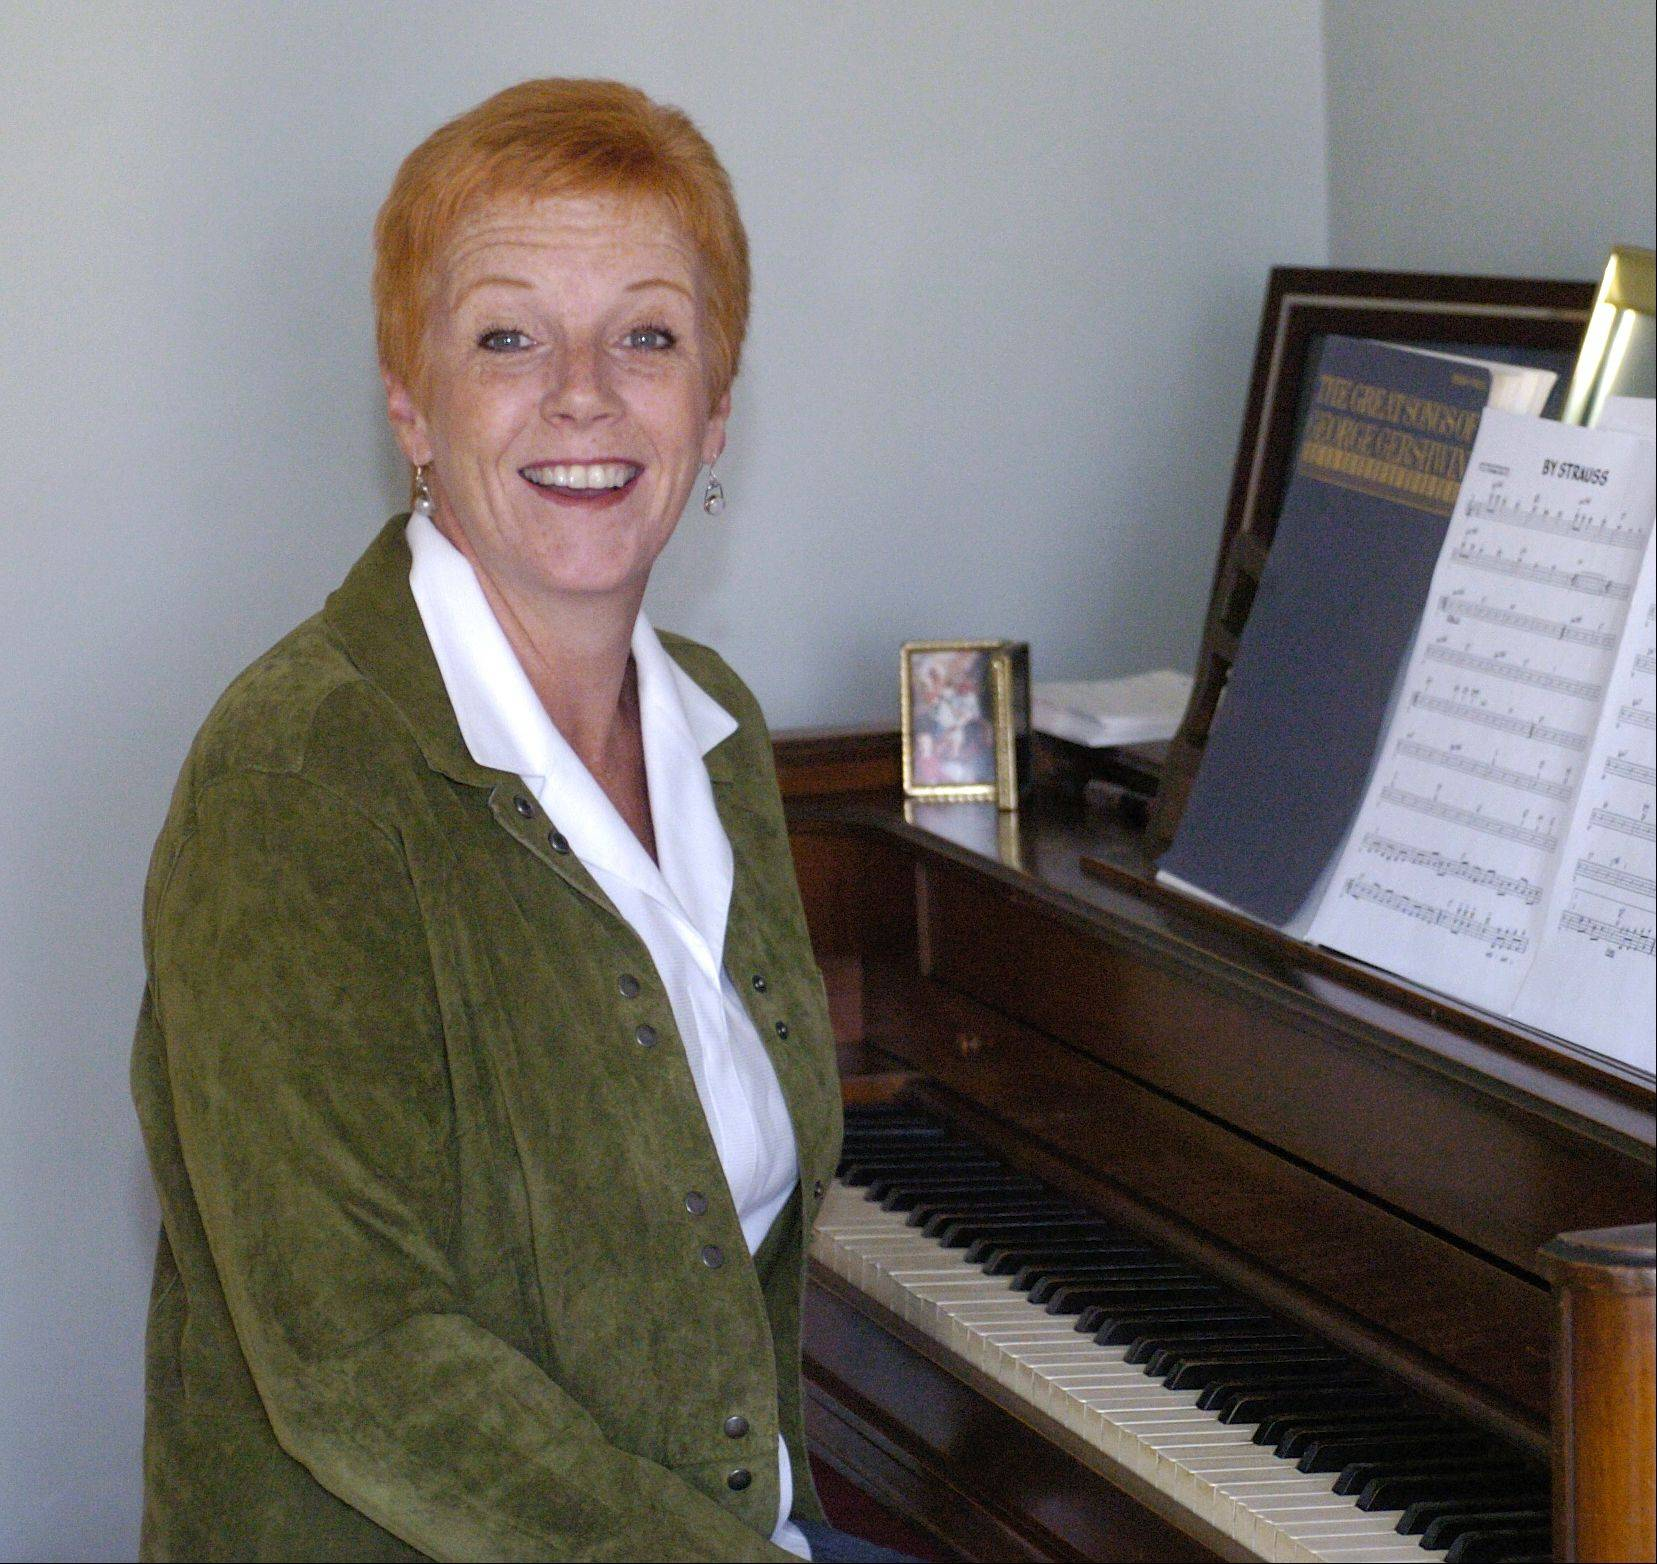 Naperville resident and cabaret singer Joan Curto is set to perform her cabaret show Sunday.